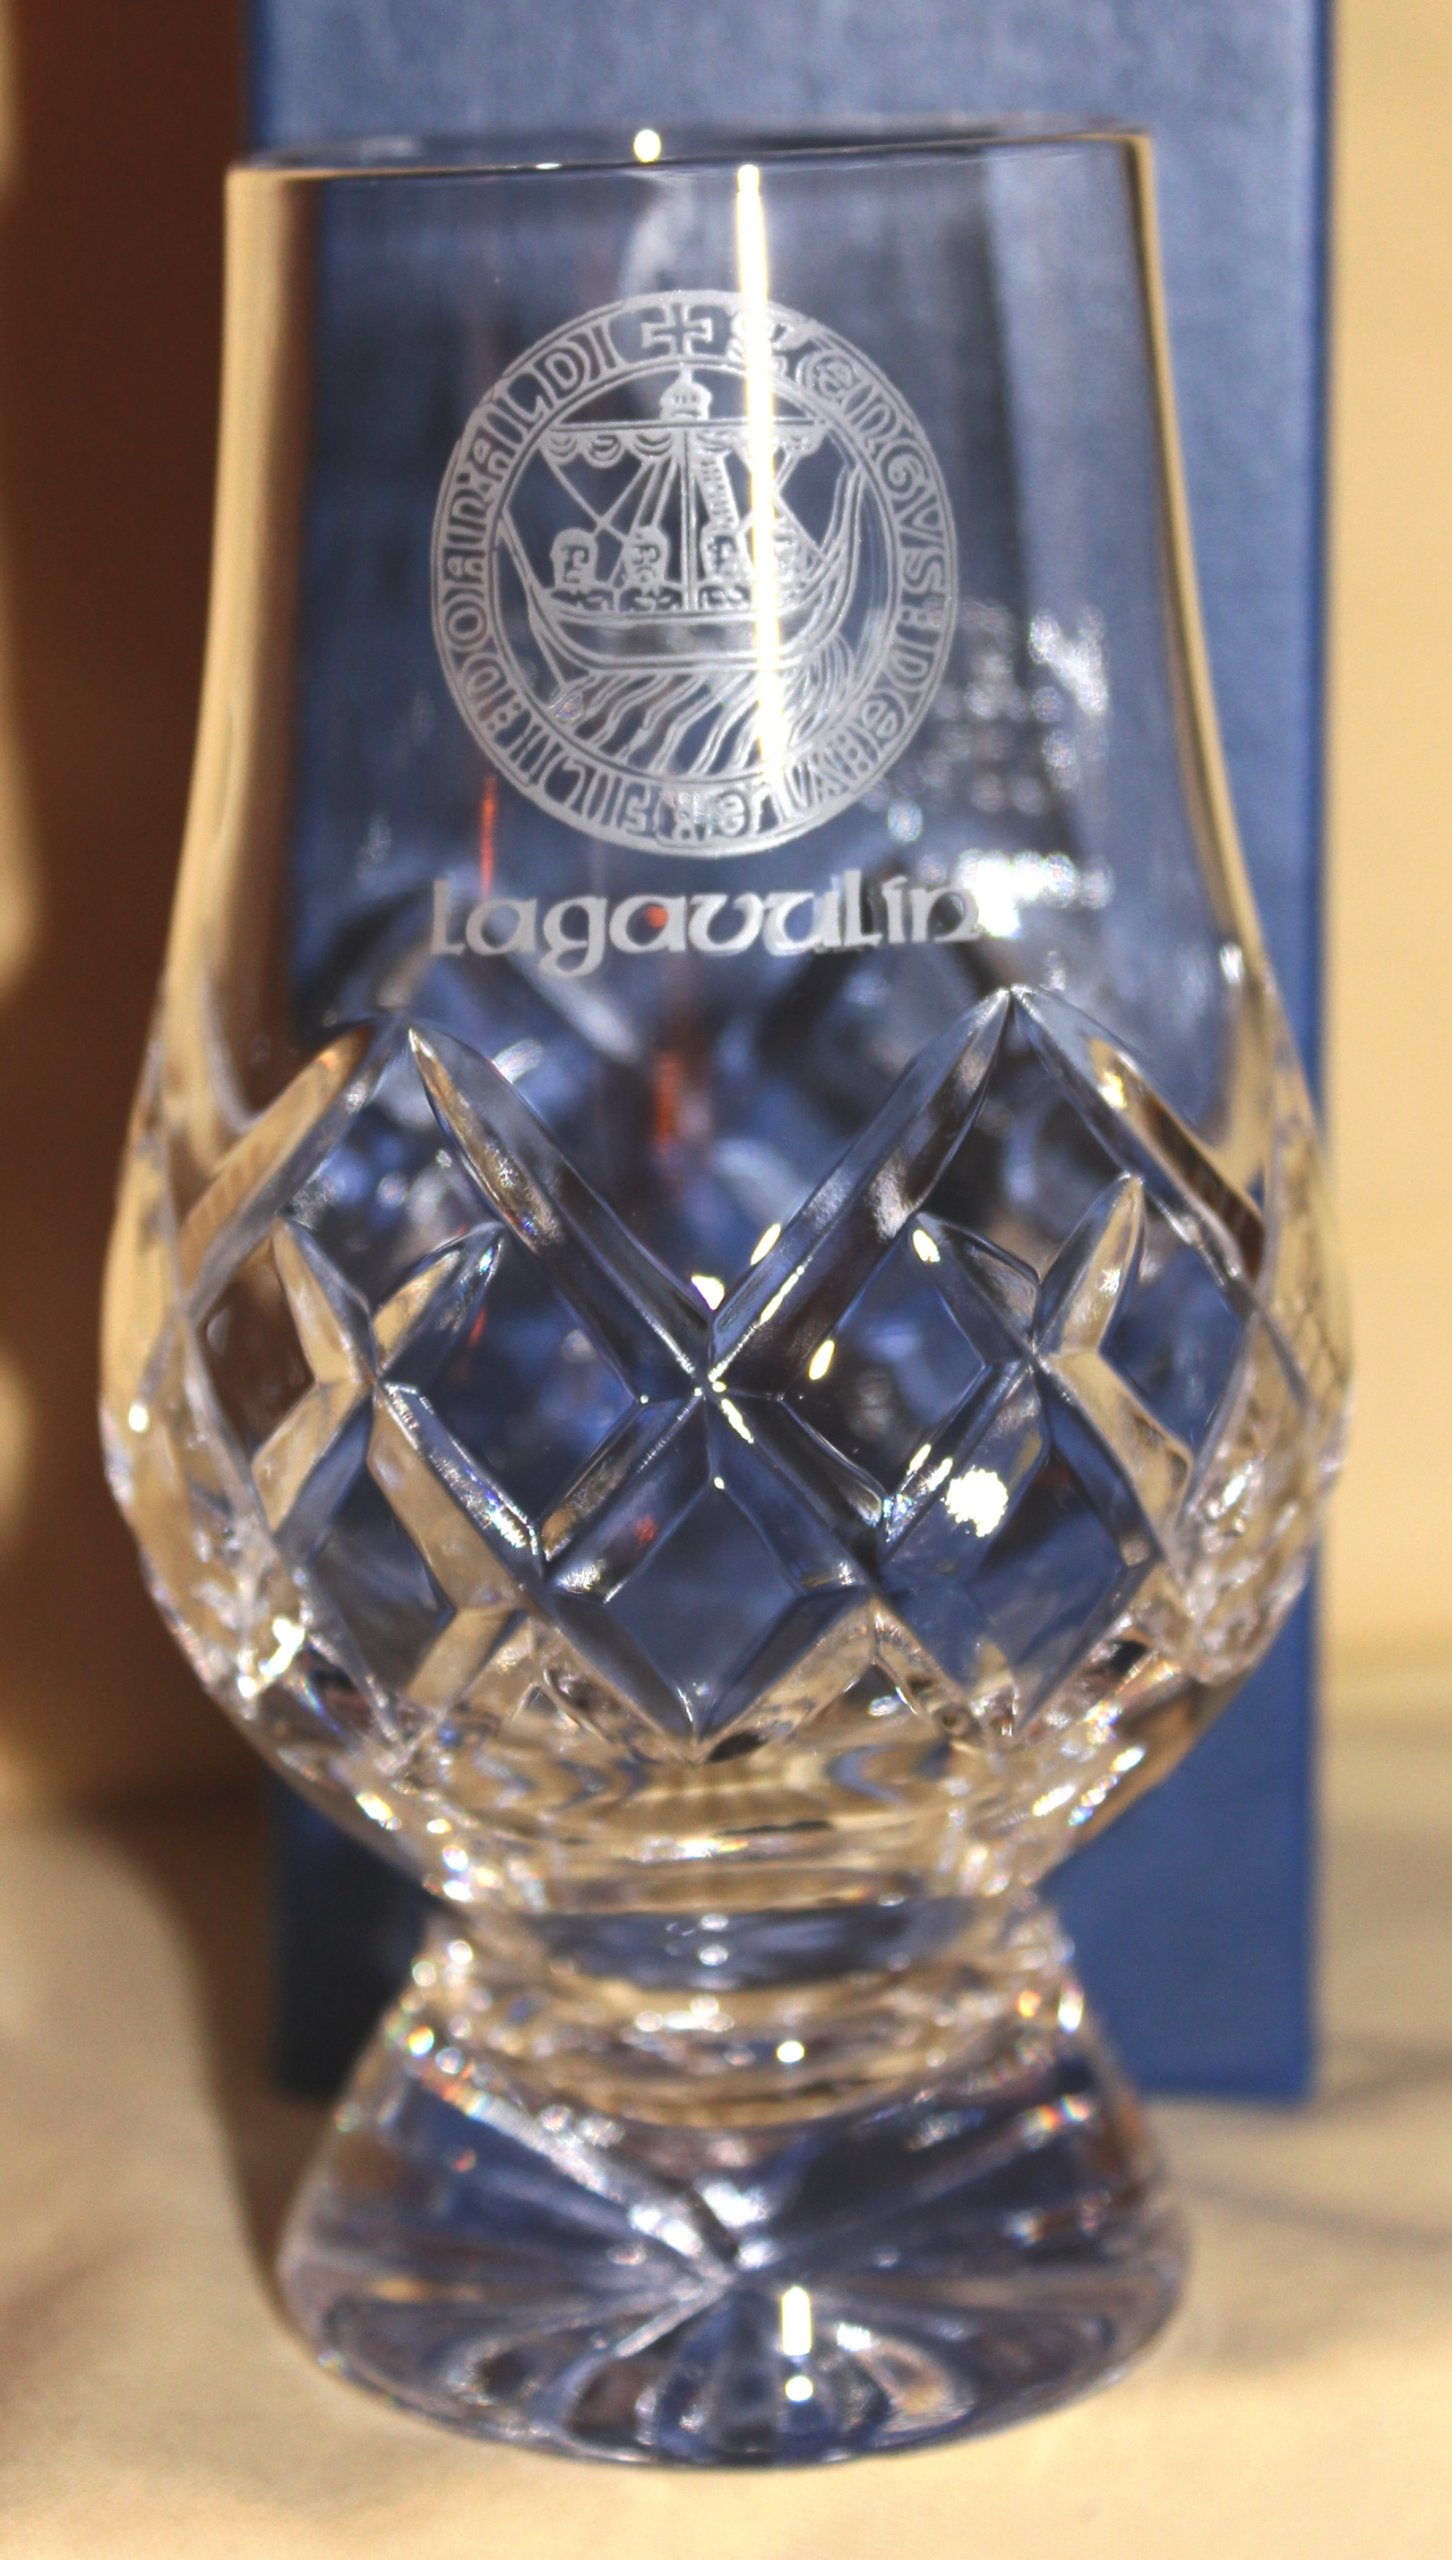 LAGAVULIN ISLAY CREST OFFICIAL GLENCAIRN CUT CRYSTAL SCOTCH MALT WHISKY TASTING GLASS